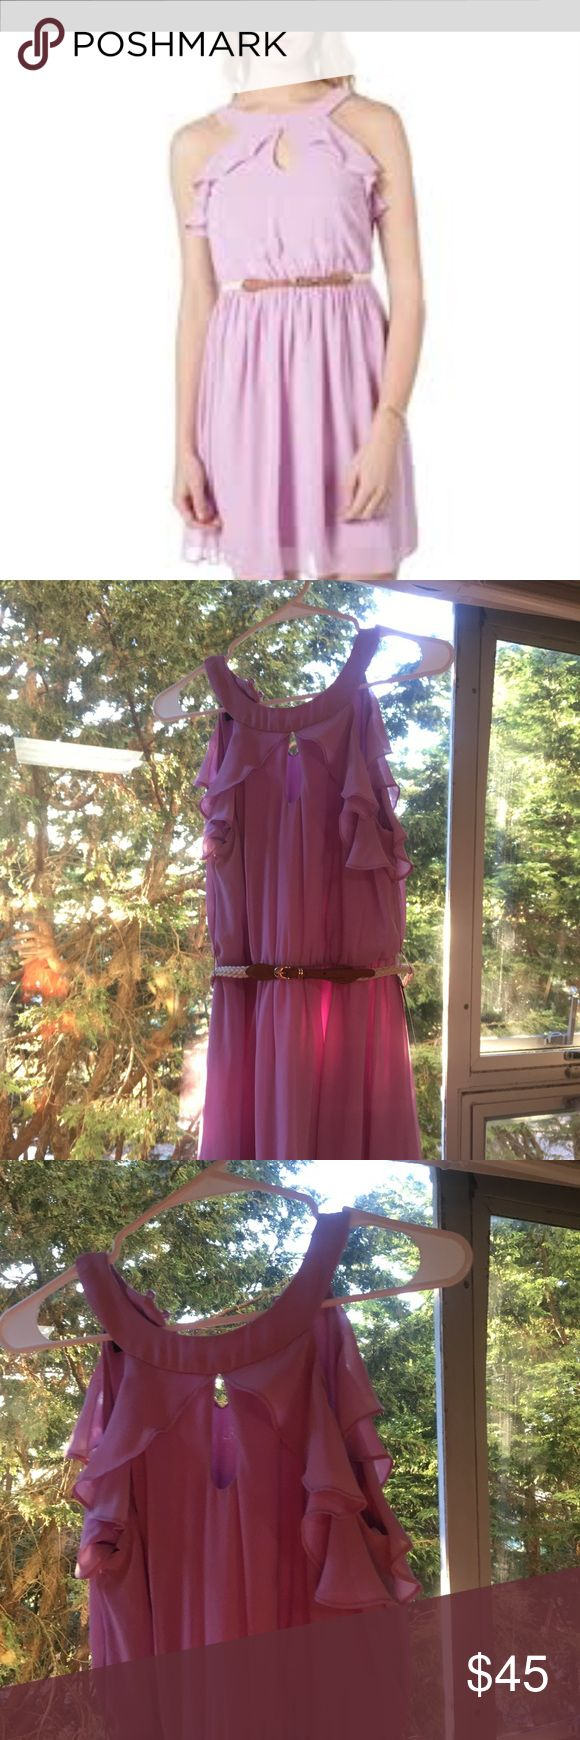 BCX Purple Dress with ruffles w/ Braided Belt BRAND NEW (never worn) WITH TAGS  - From Von Maur  - Beautiful Lilac Dress with ruffles and a braided belt around the waist  - Great for spring & summer outings  - BCX Dresses Midi